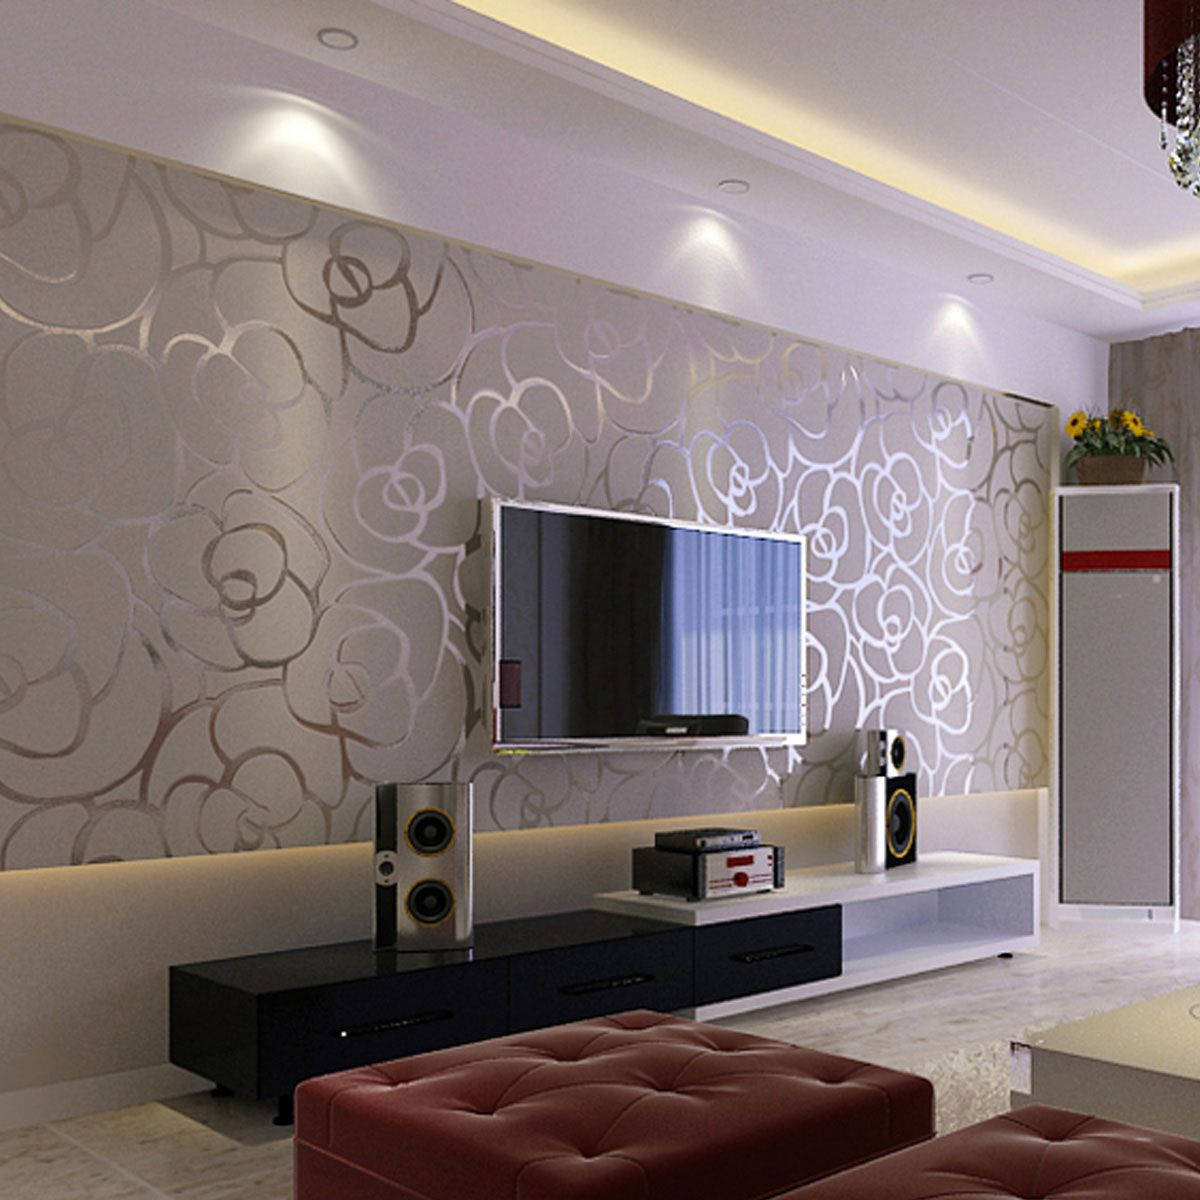 Home Wallpaper Design Decoration Idea 15 Wallpaper Designs: 4 Concepts For  Your Own Home